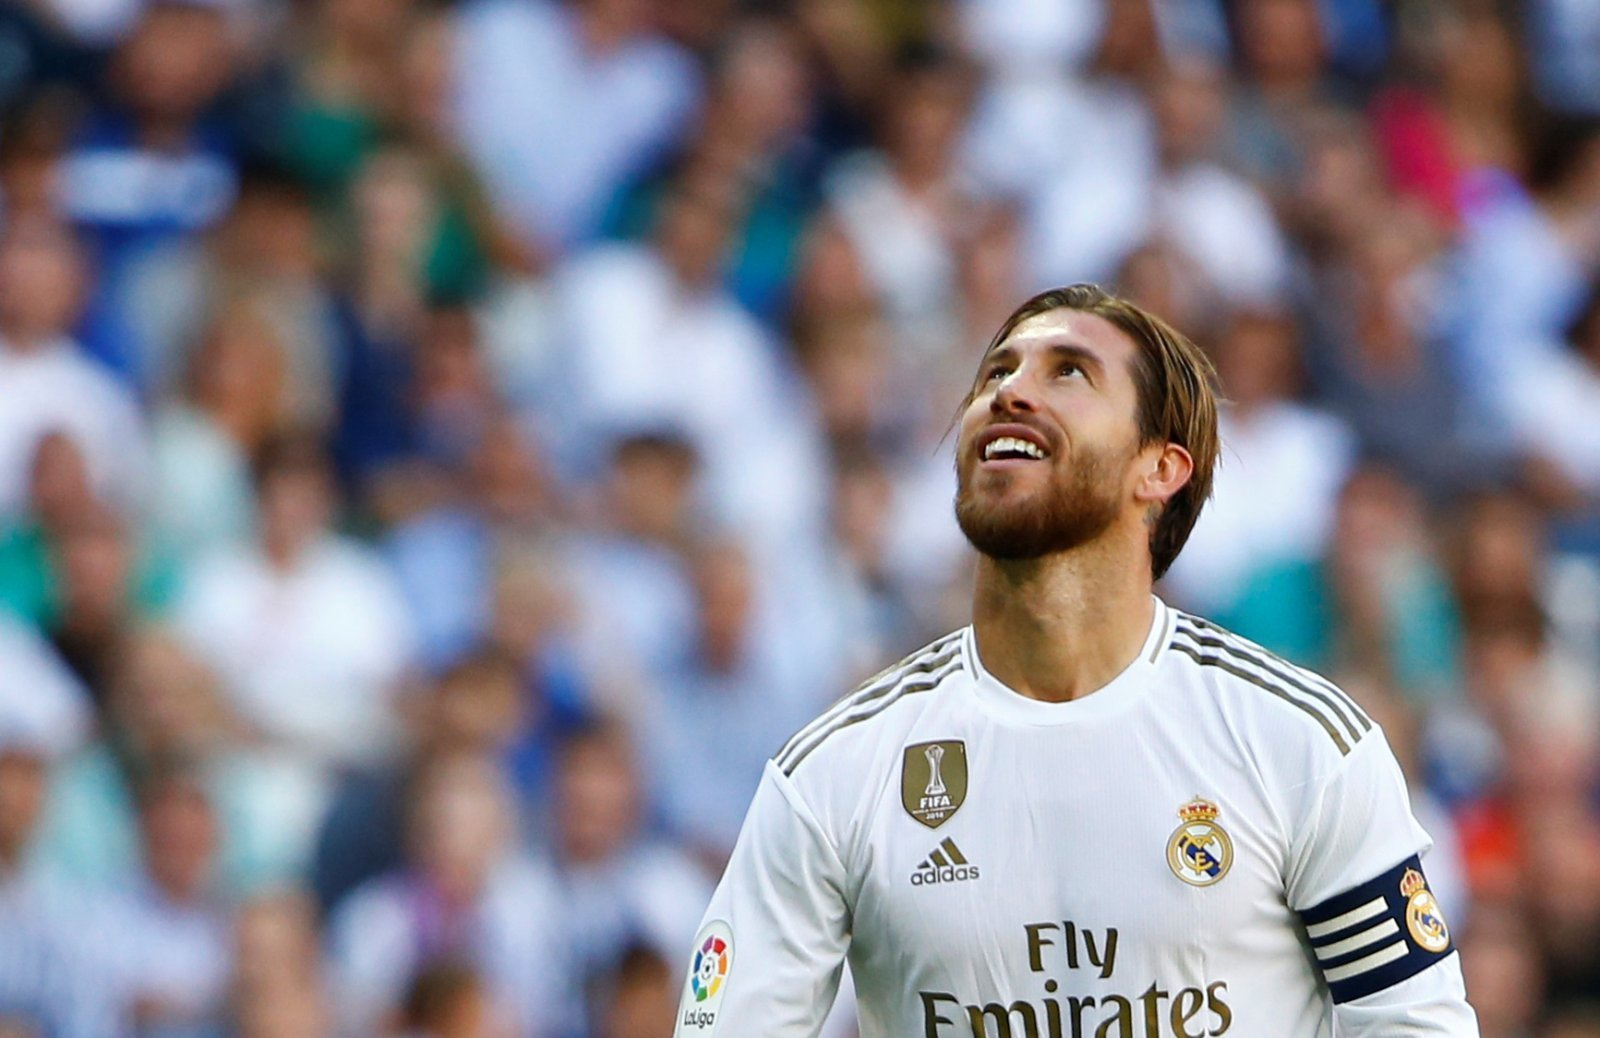 Unsung Hero: Sergio Ramos unlucky to be slammed for having night to forget as Mallorca beat Real Madrid